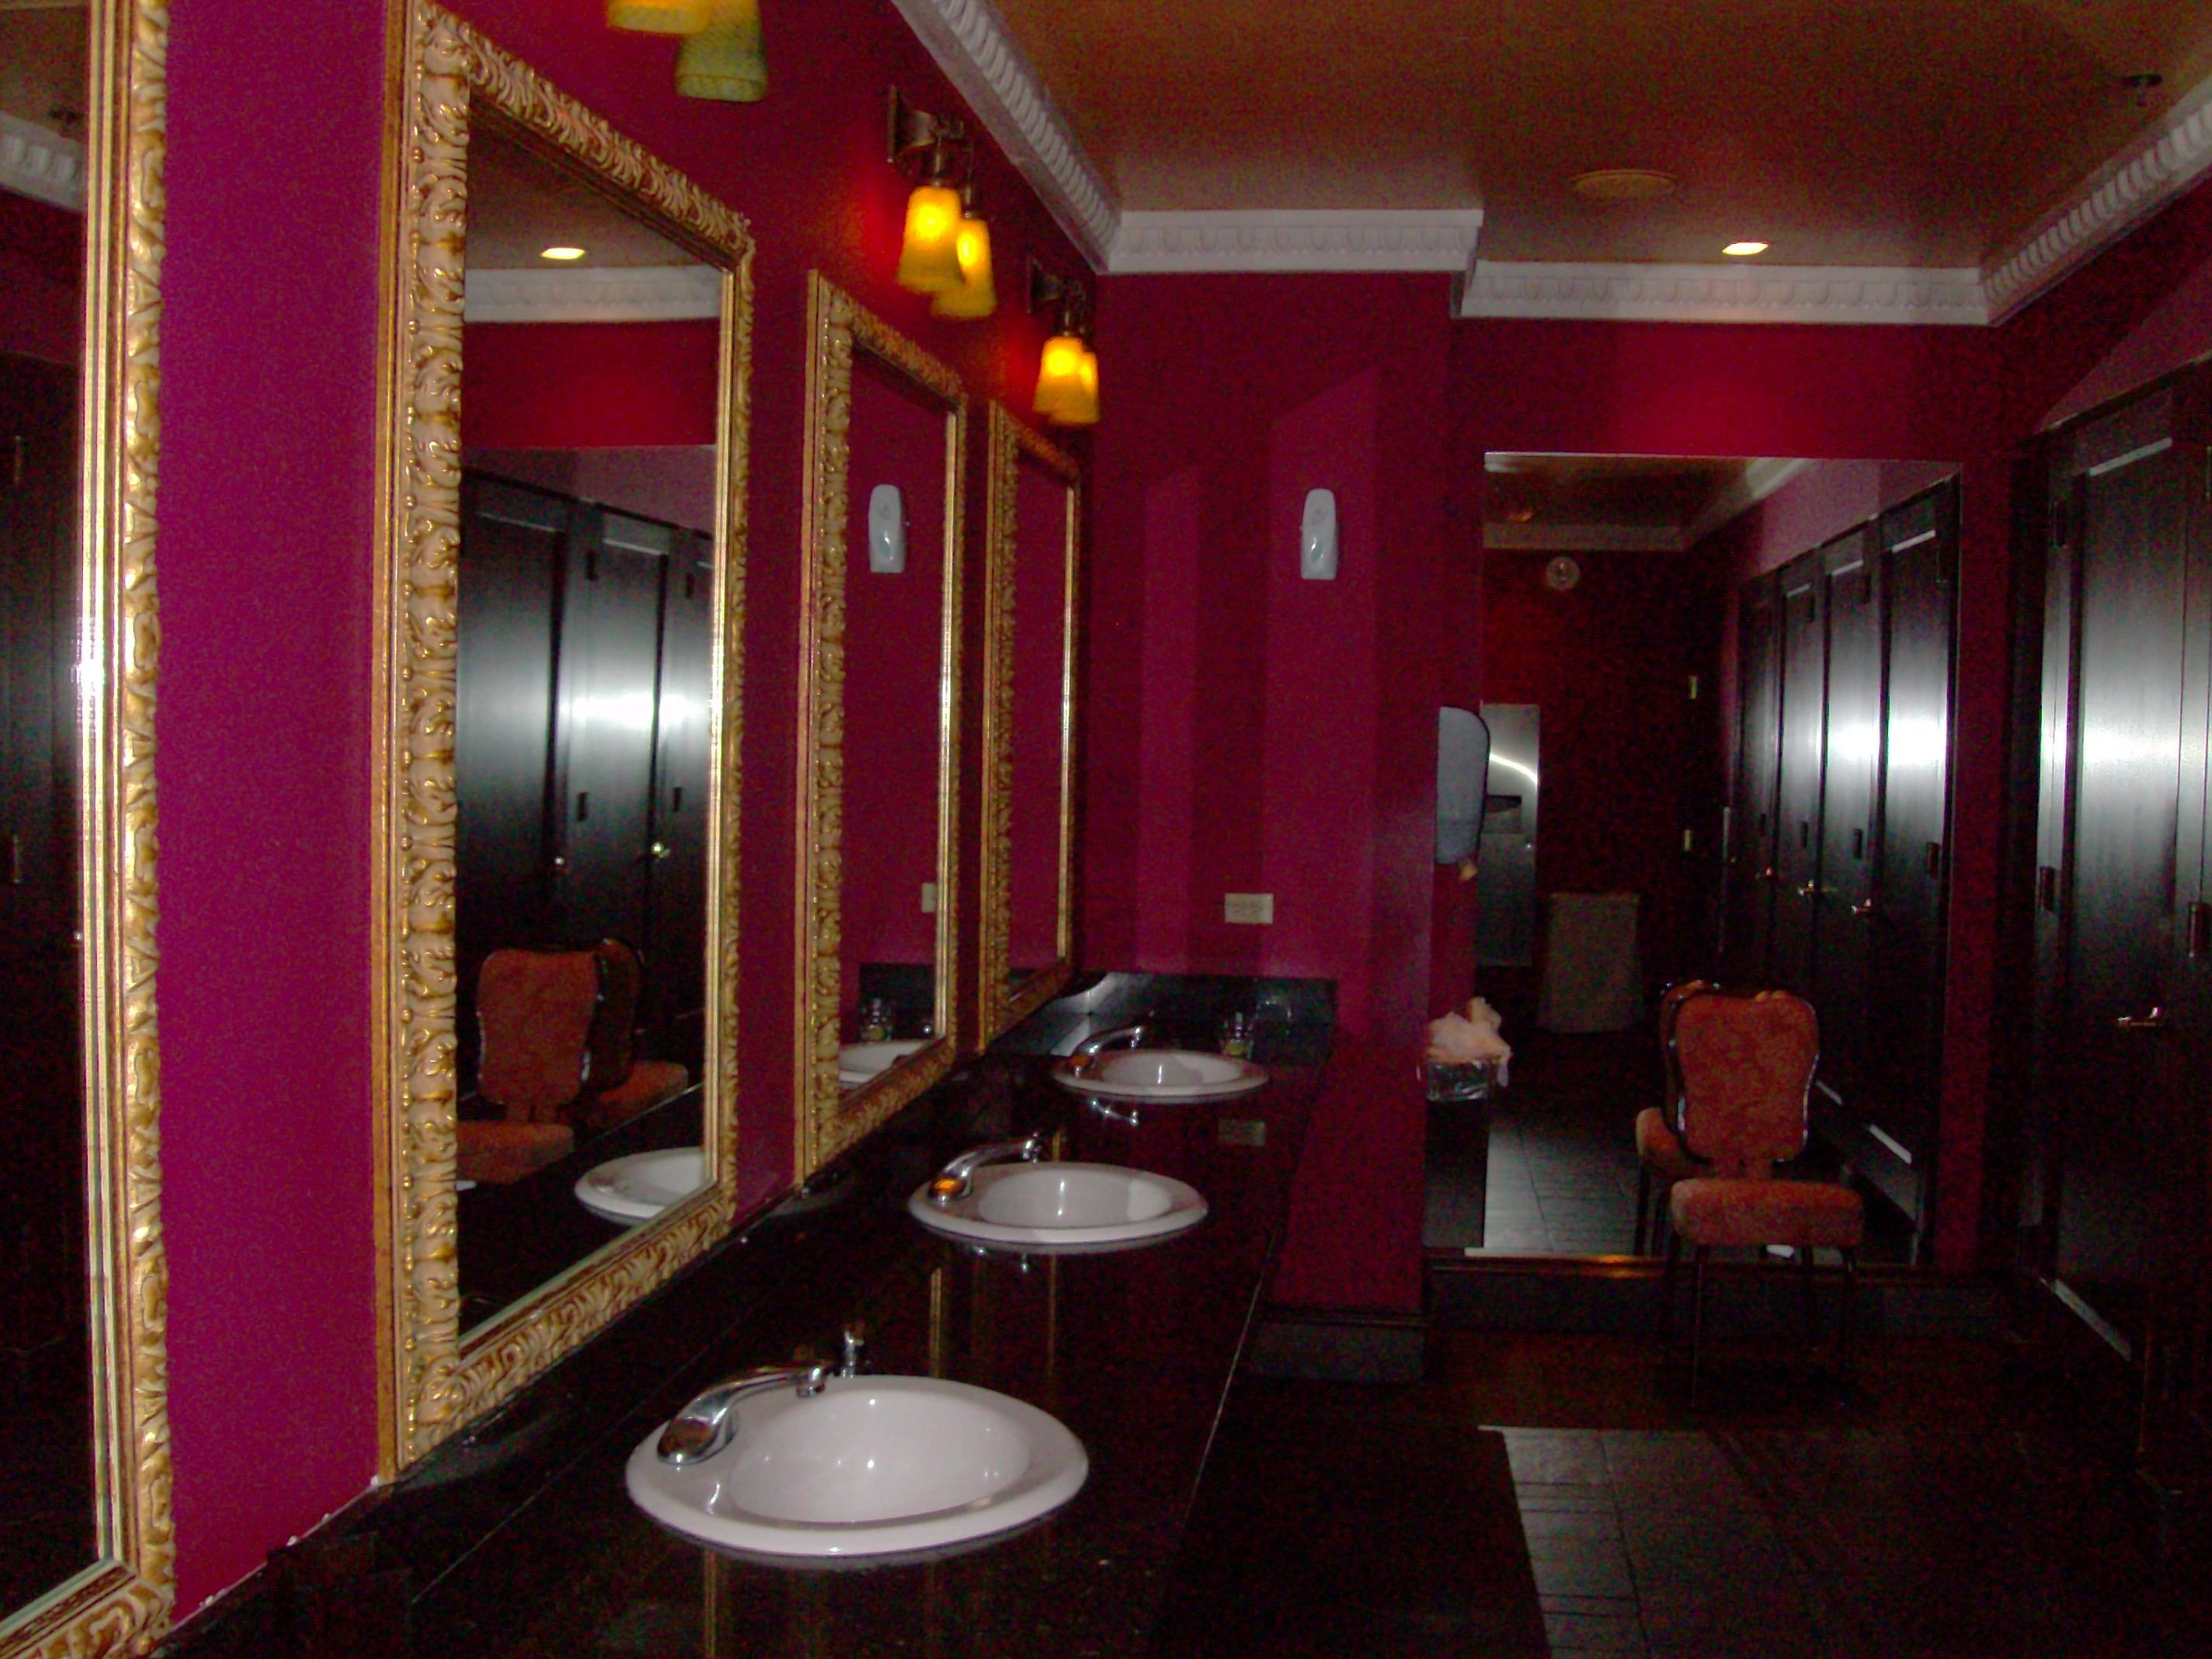 Opulent Bathroom Facilities with